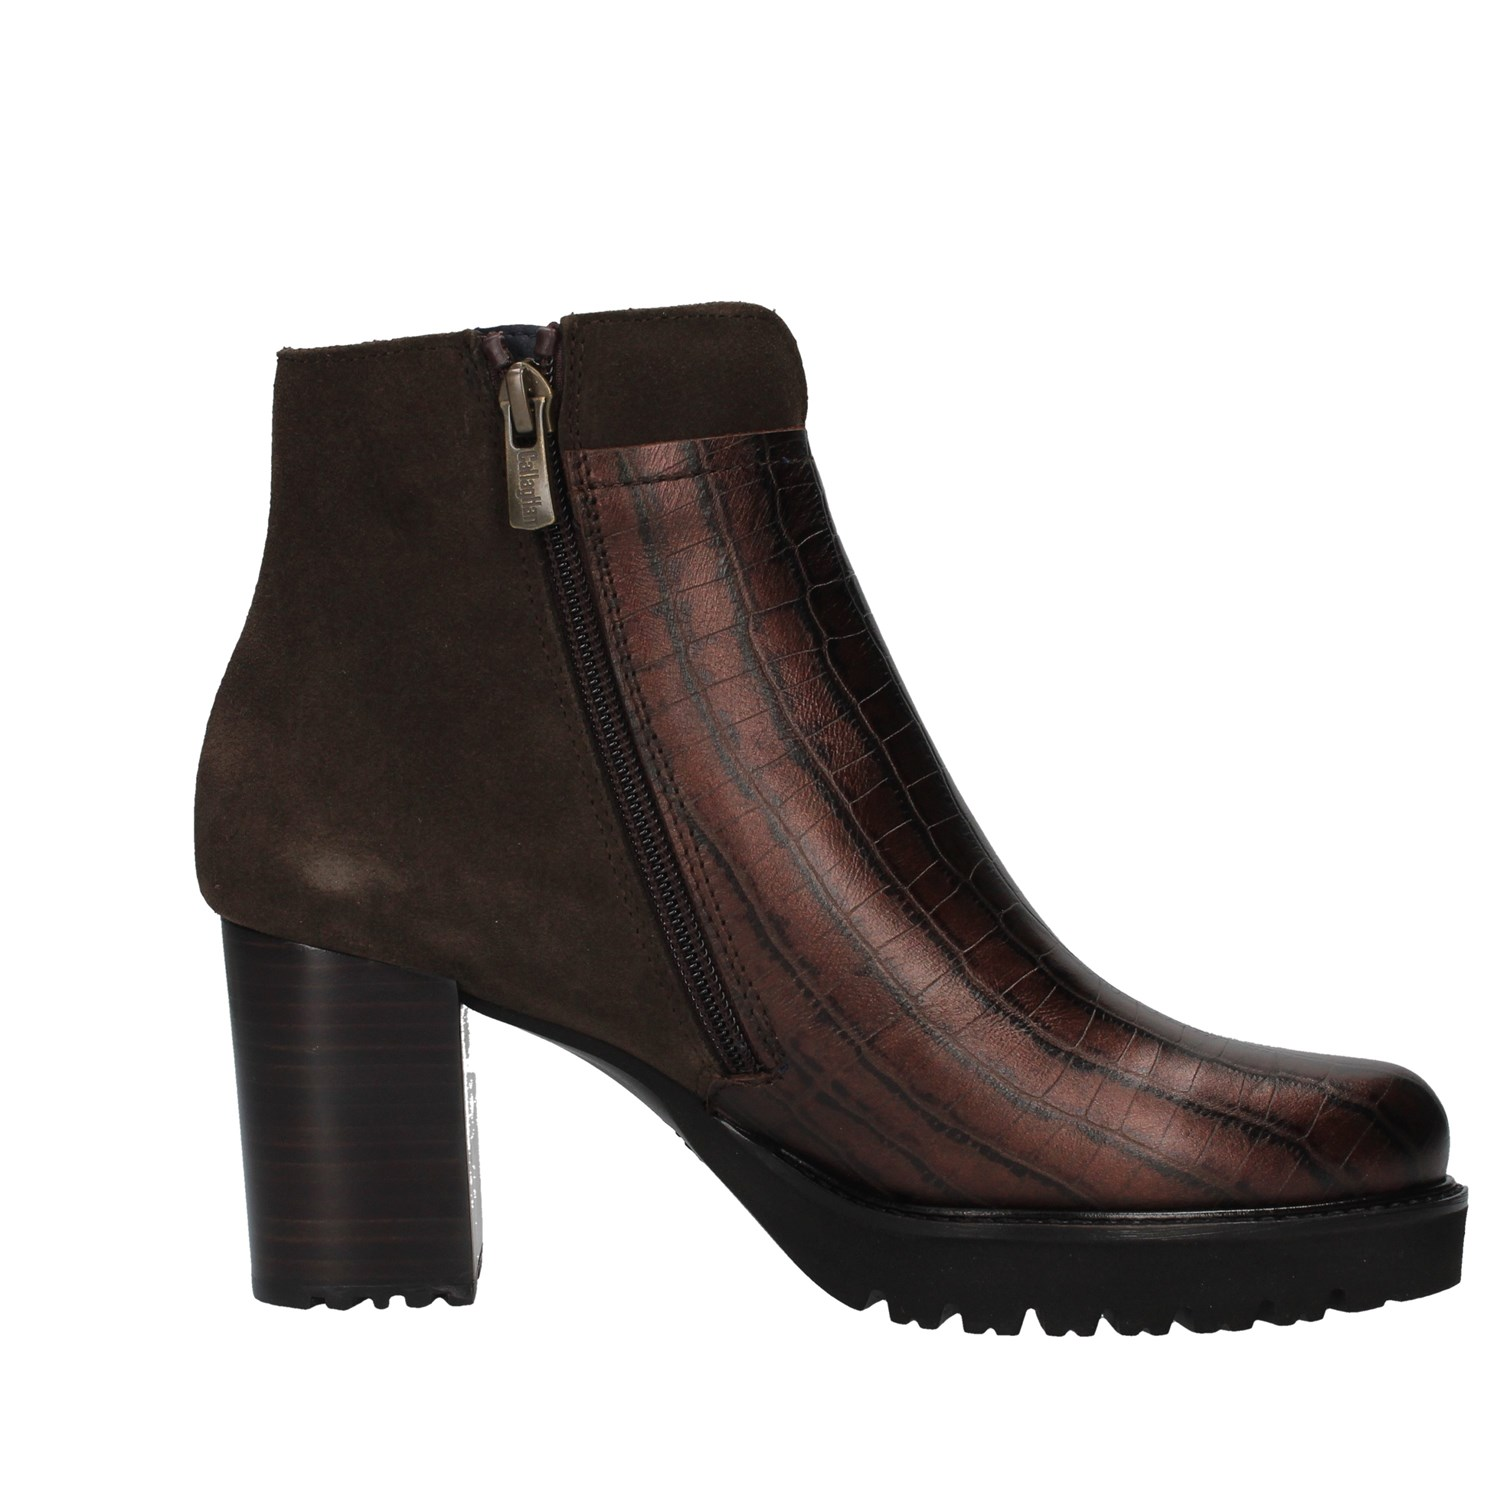 Callaghan Shoes Woman boots BROWN 21930